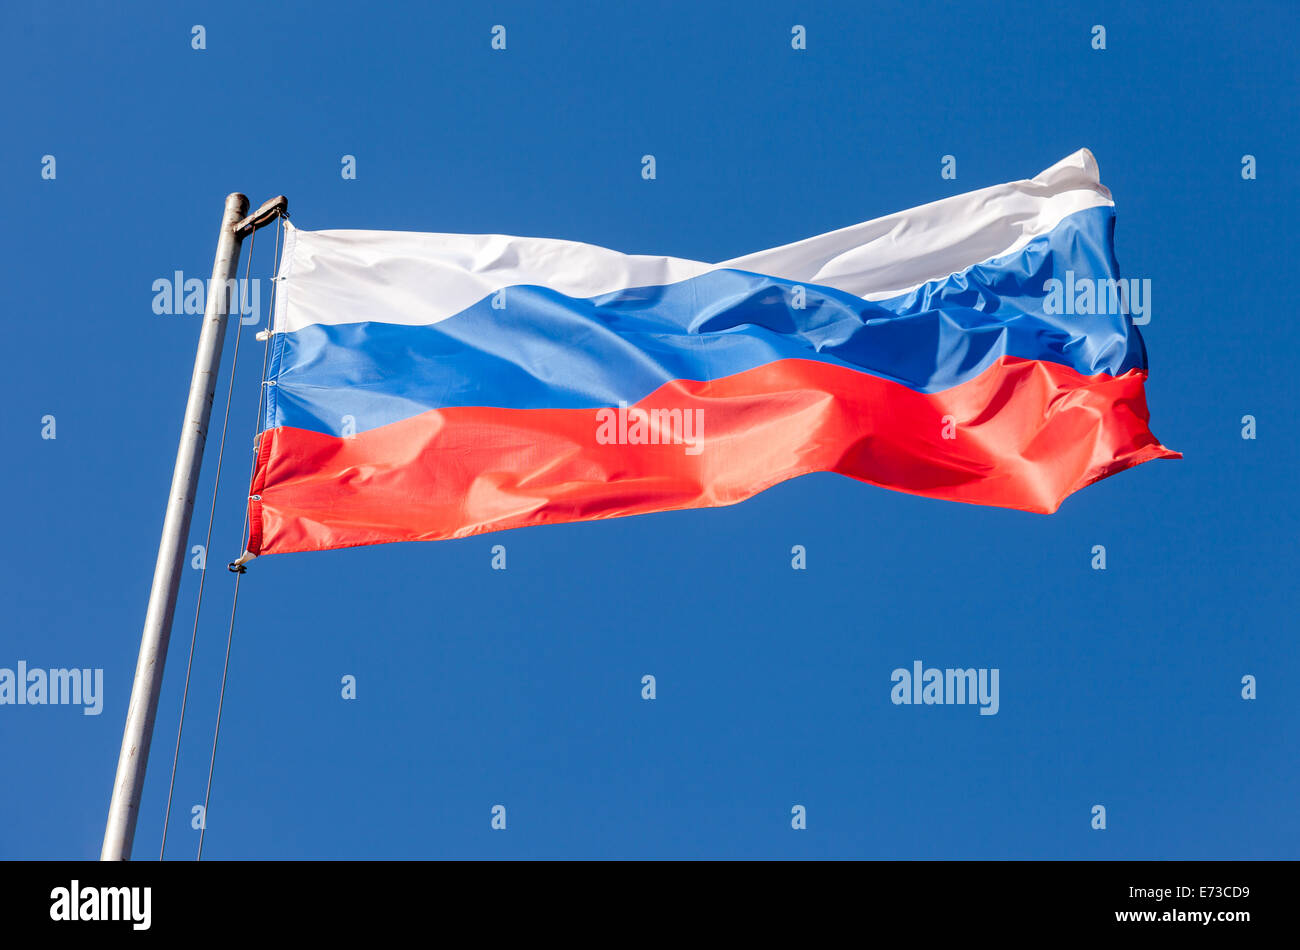 Russian flag waving in the wind over blue sky - Stock Image